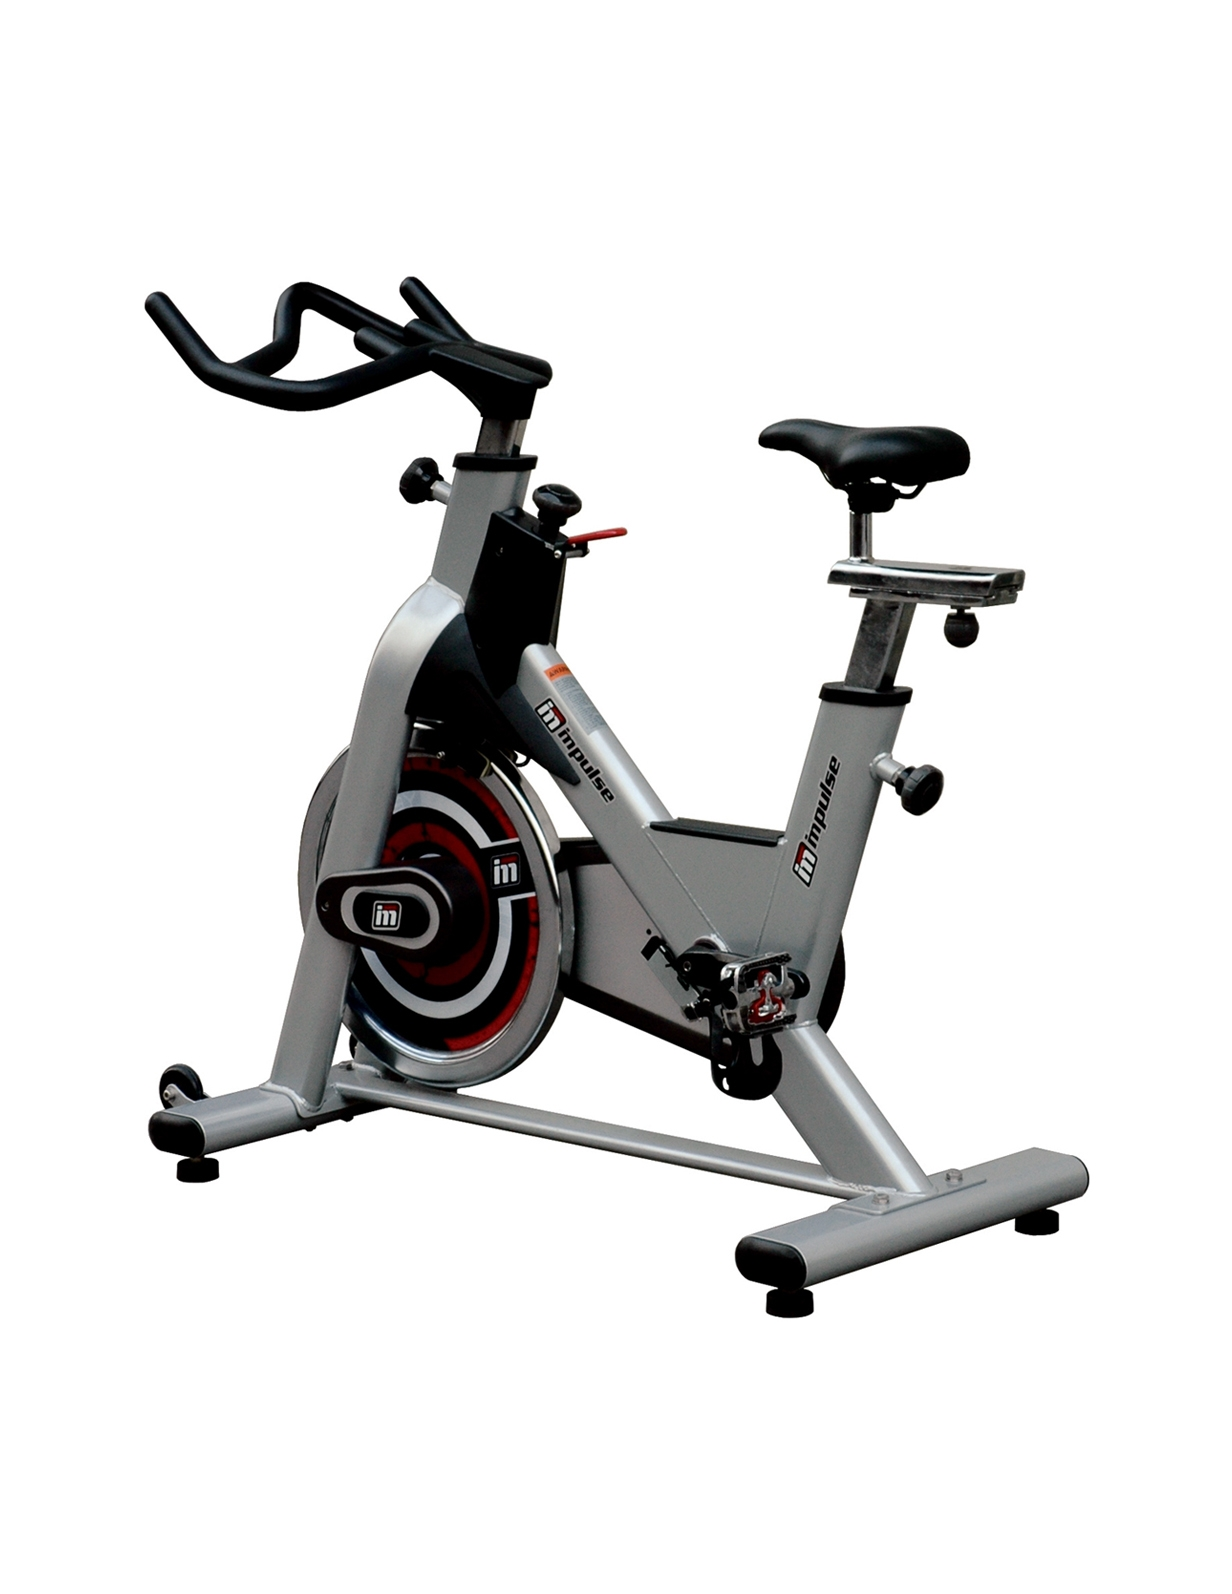 PS300 SPINNING BIKE